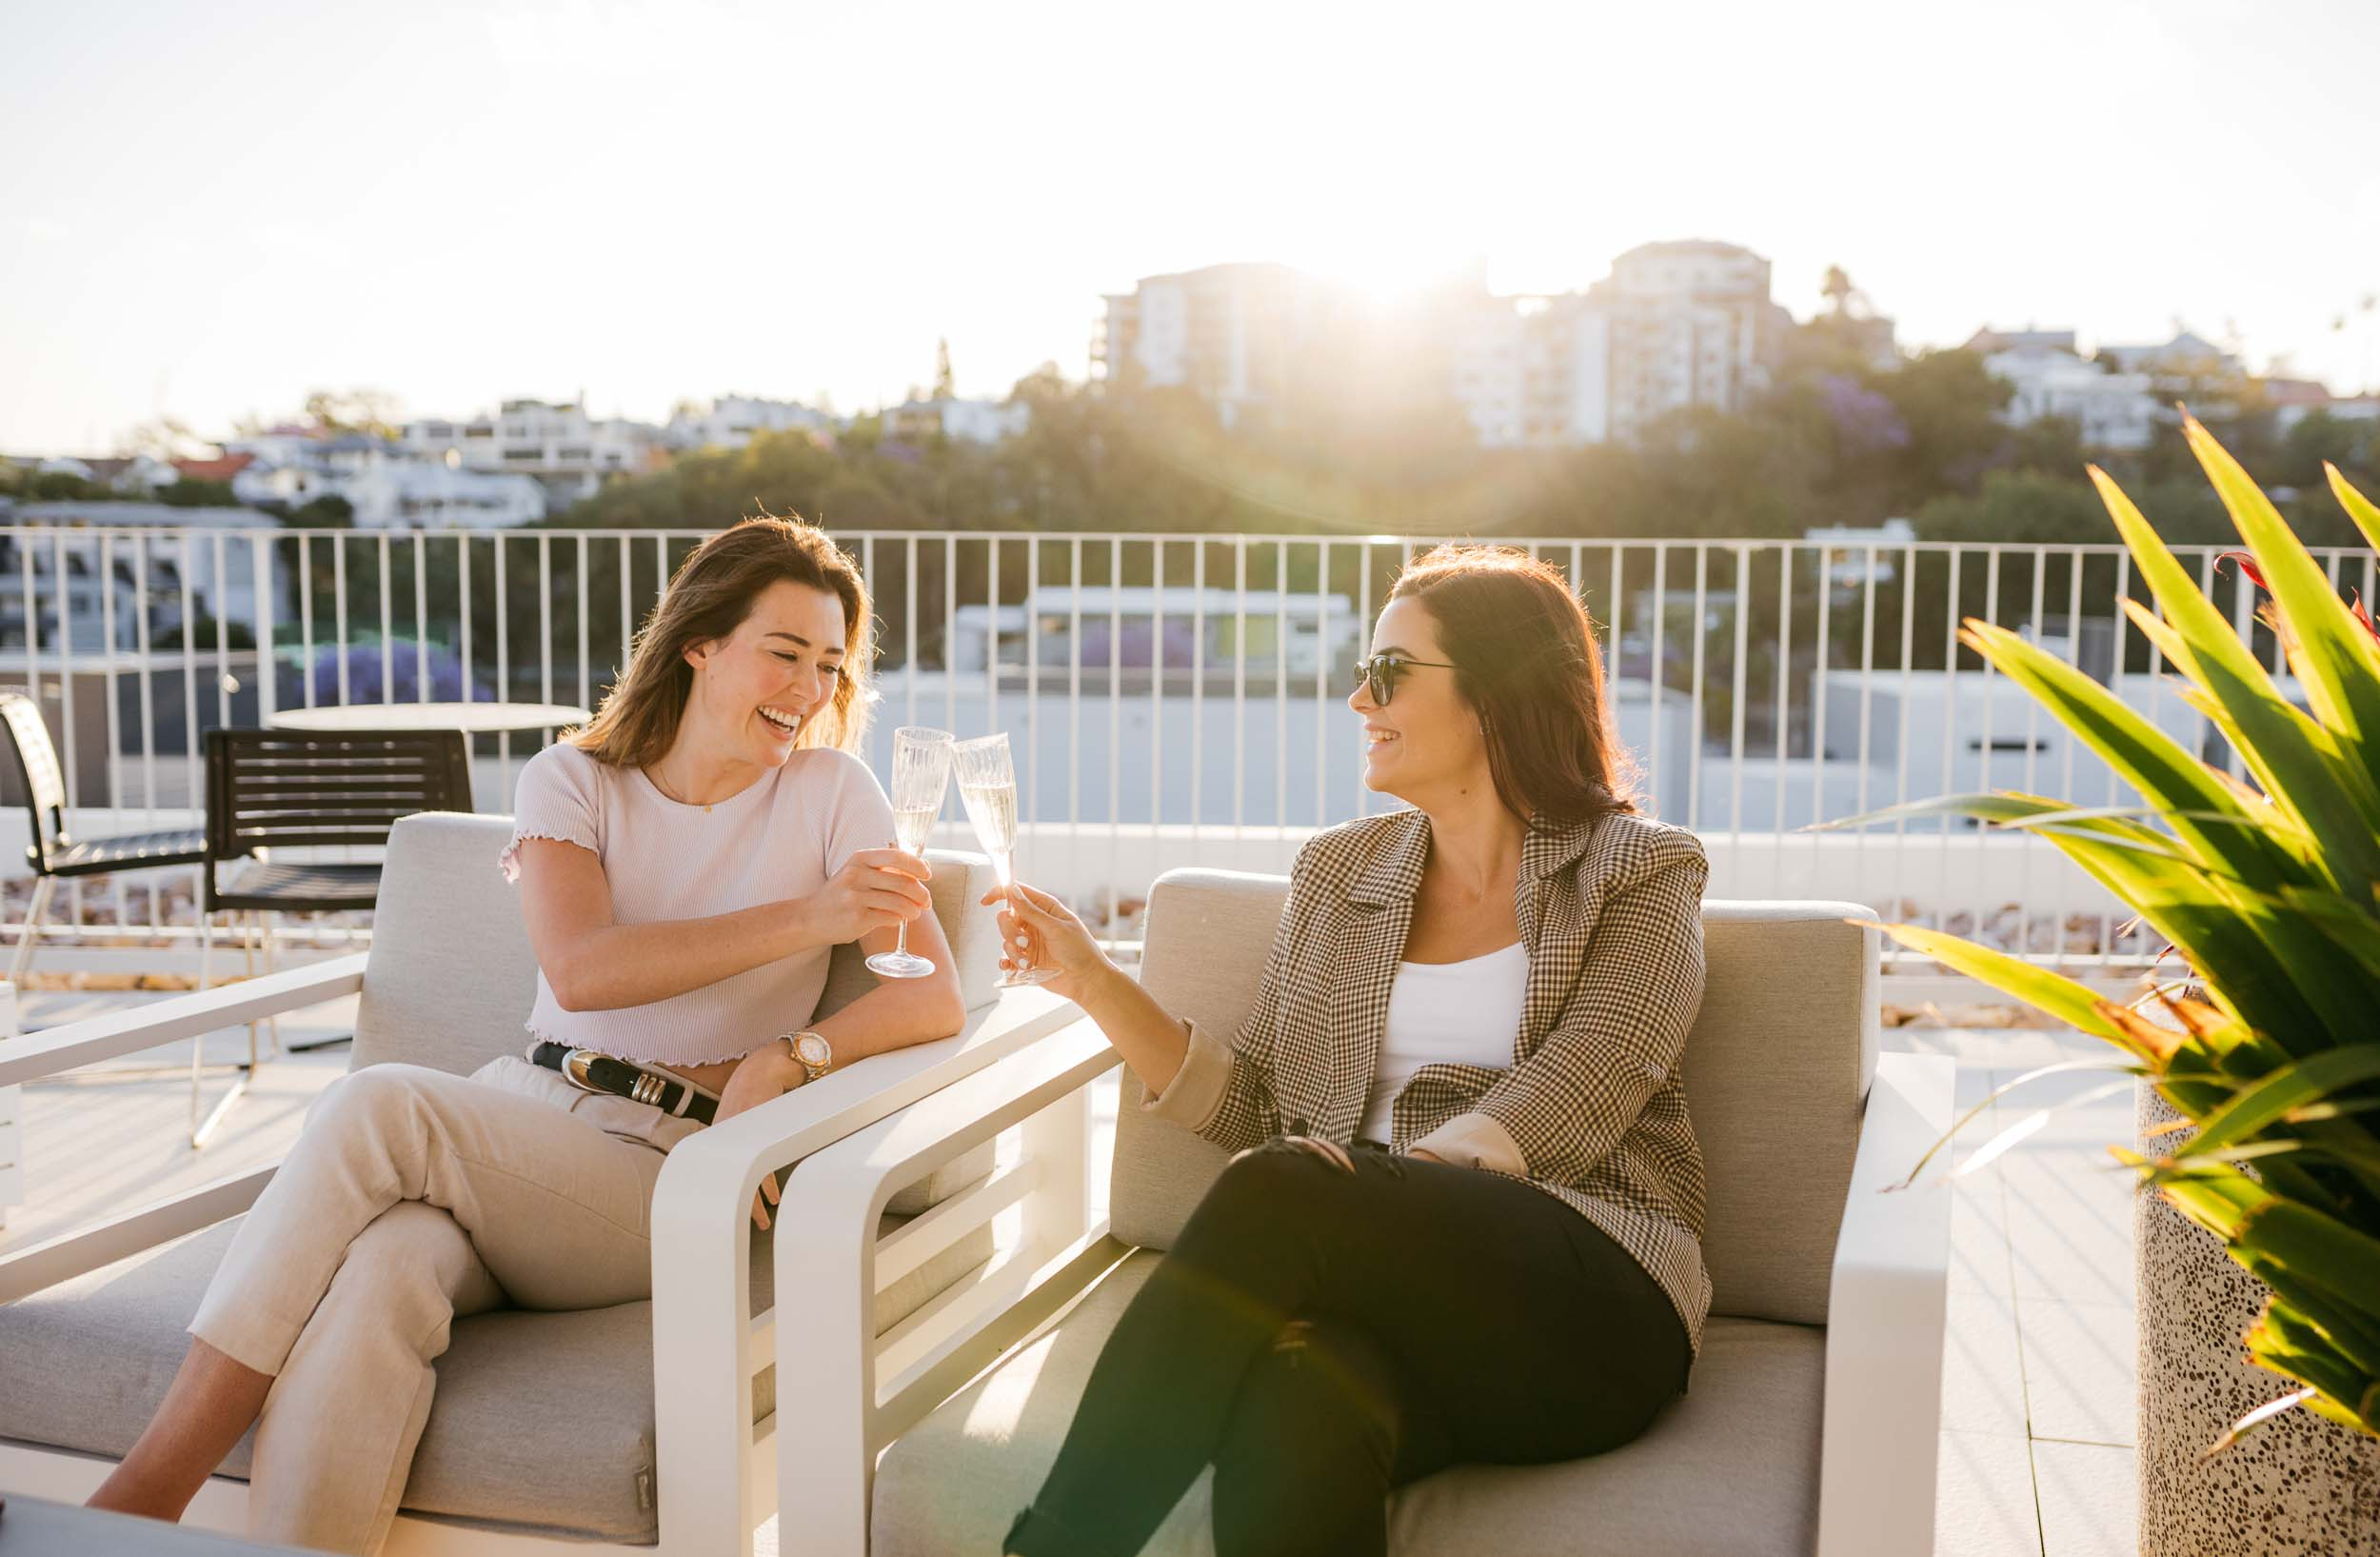 Confident business owners Leanne and Steph clinking wine glasses